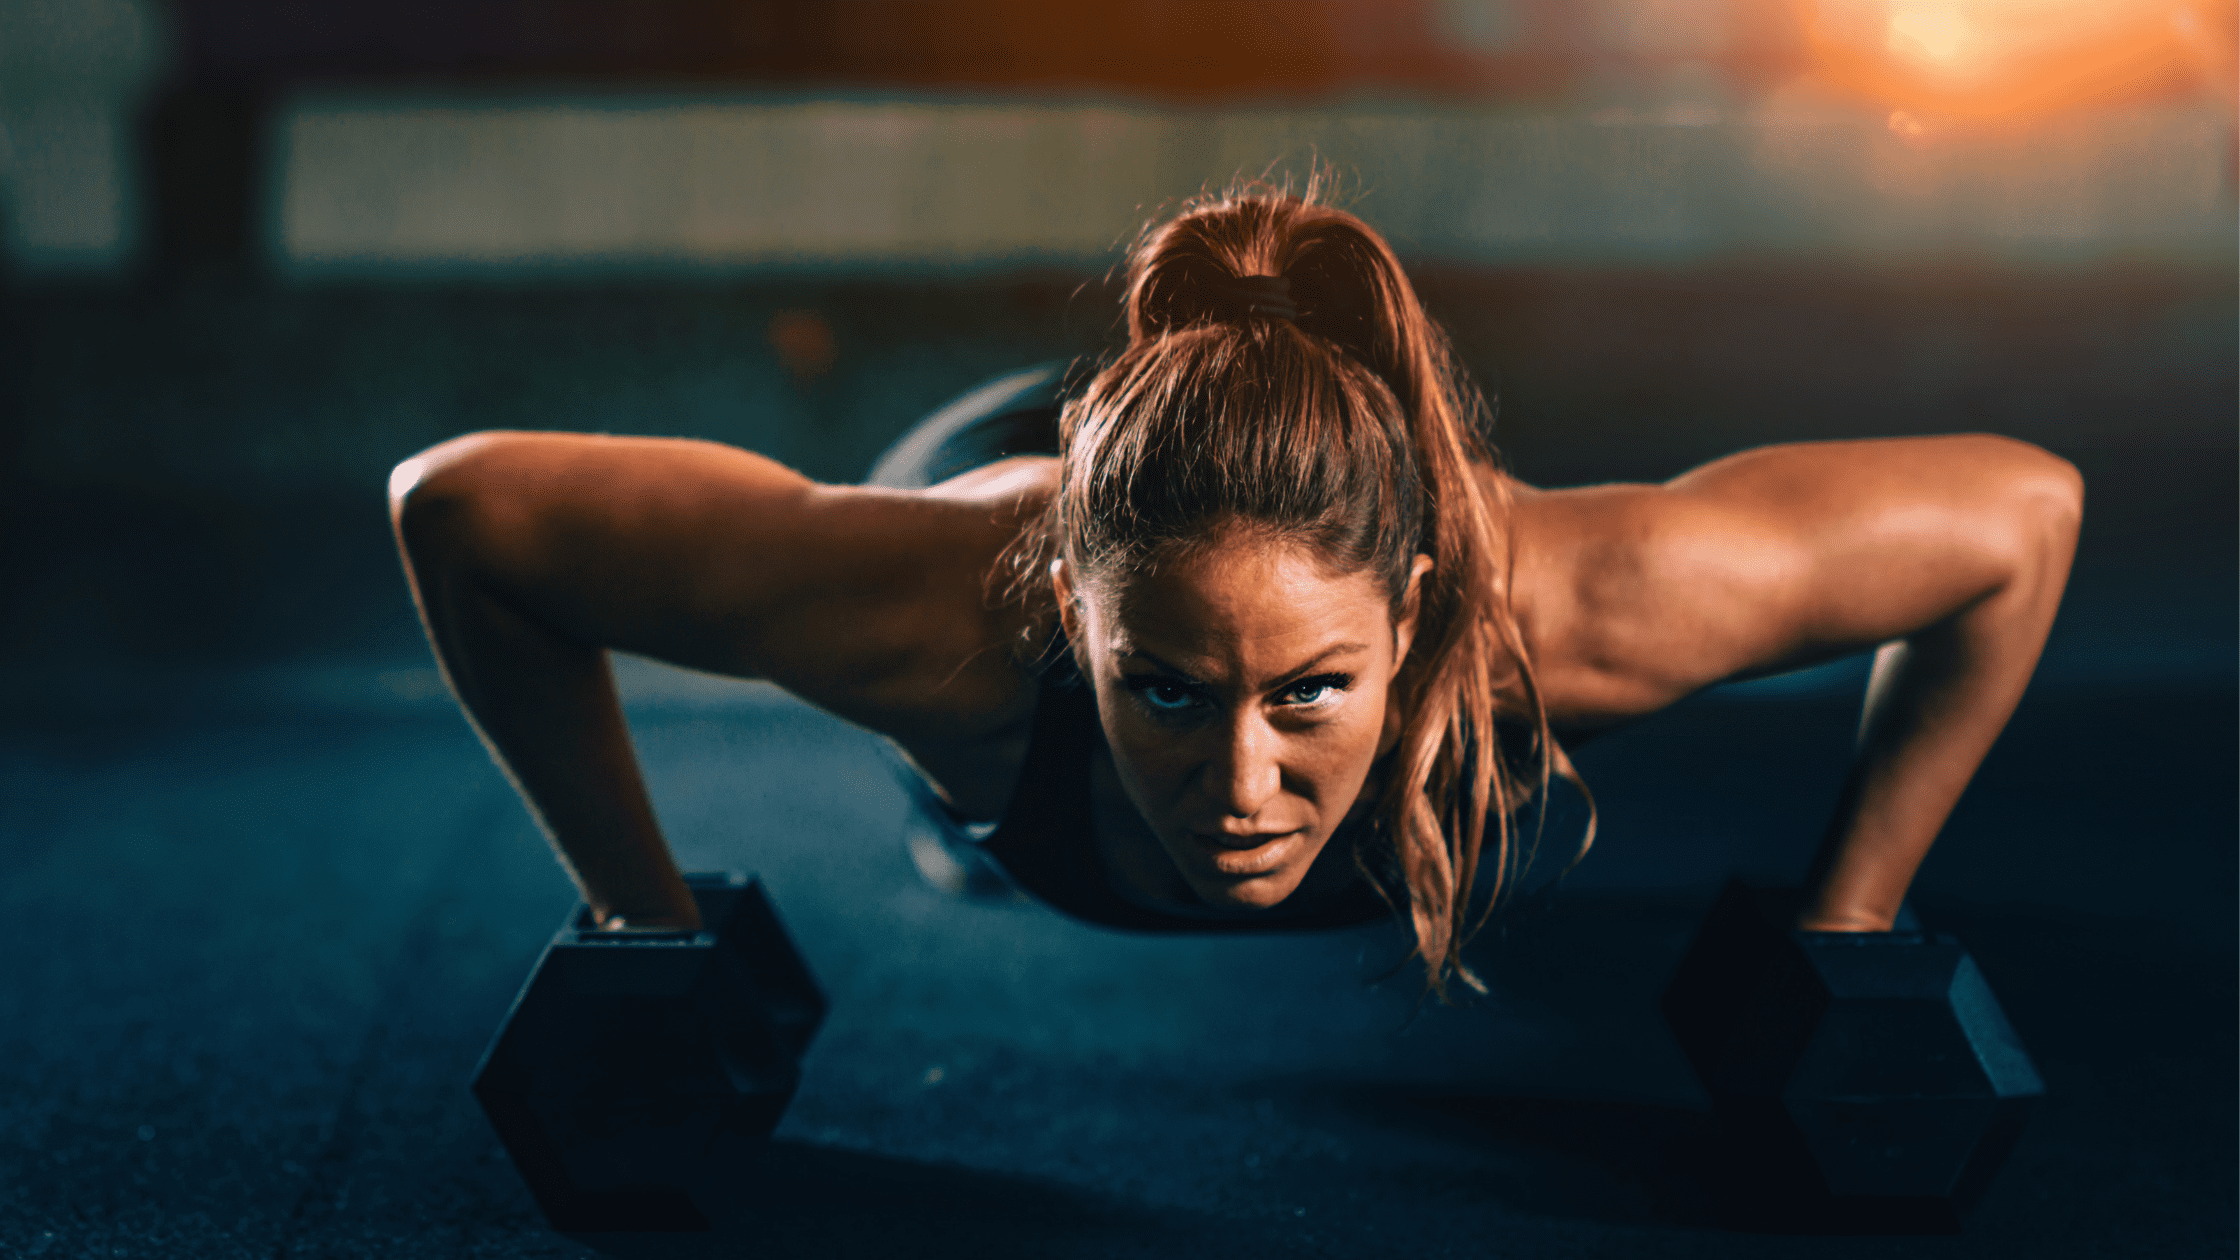 young woman doing pushups on weights after smoking cannabis